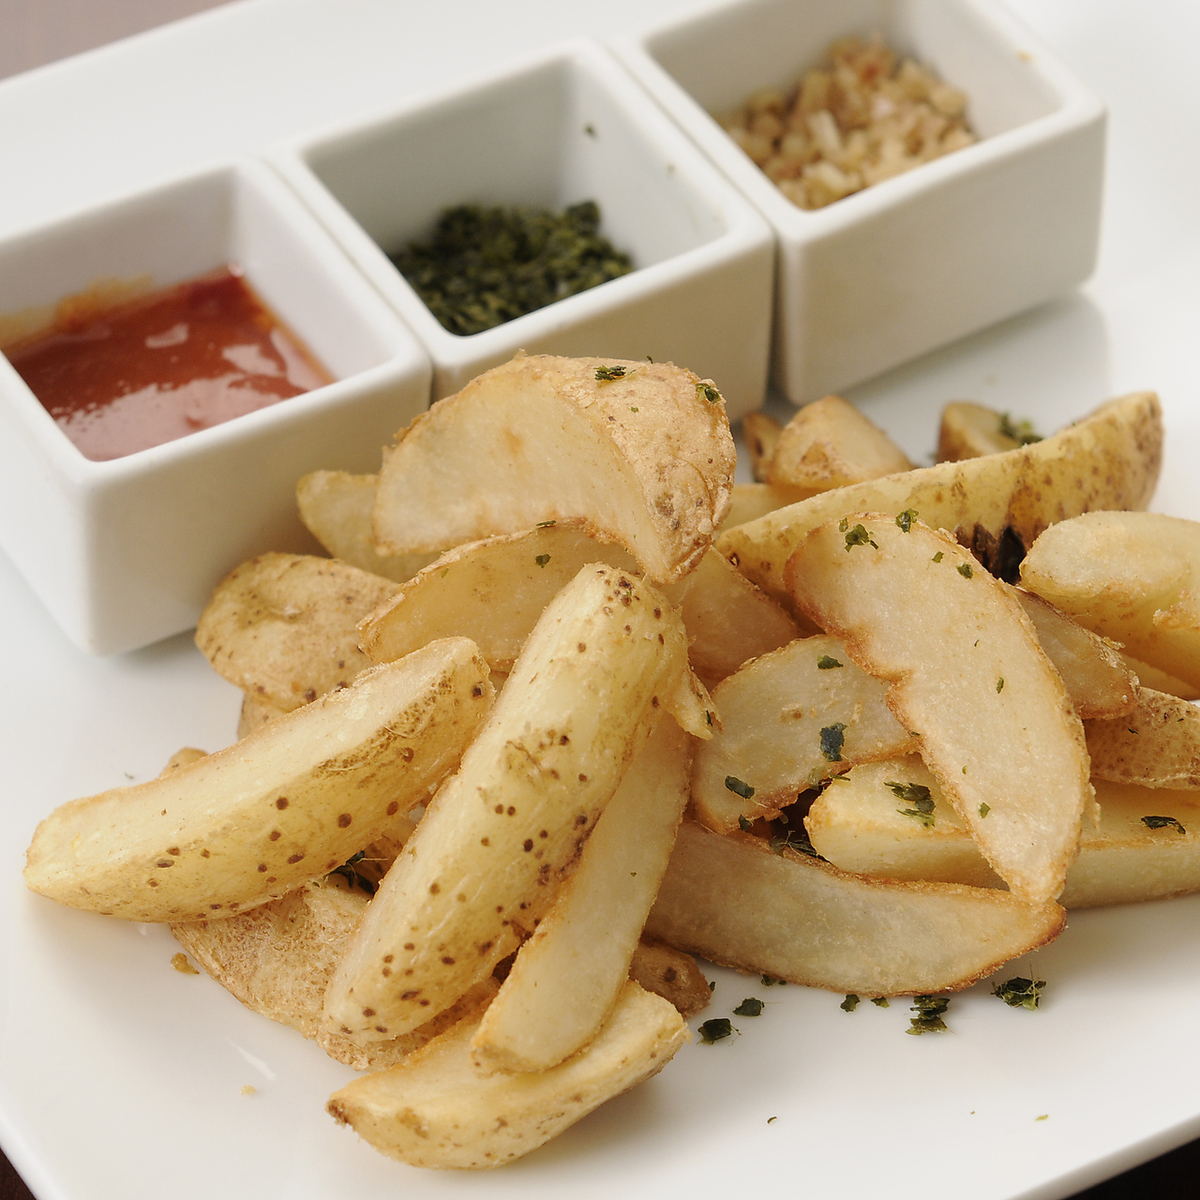 French fries with herbal salt